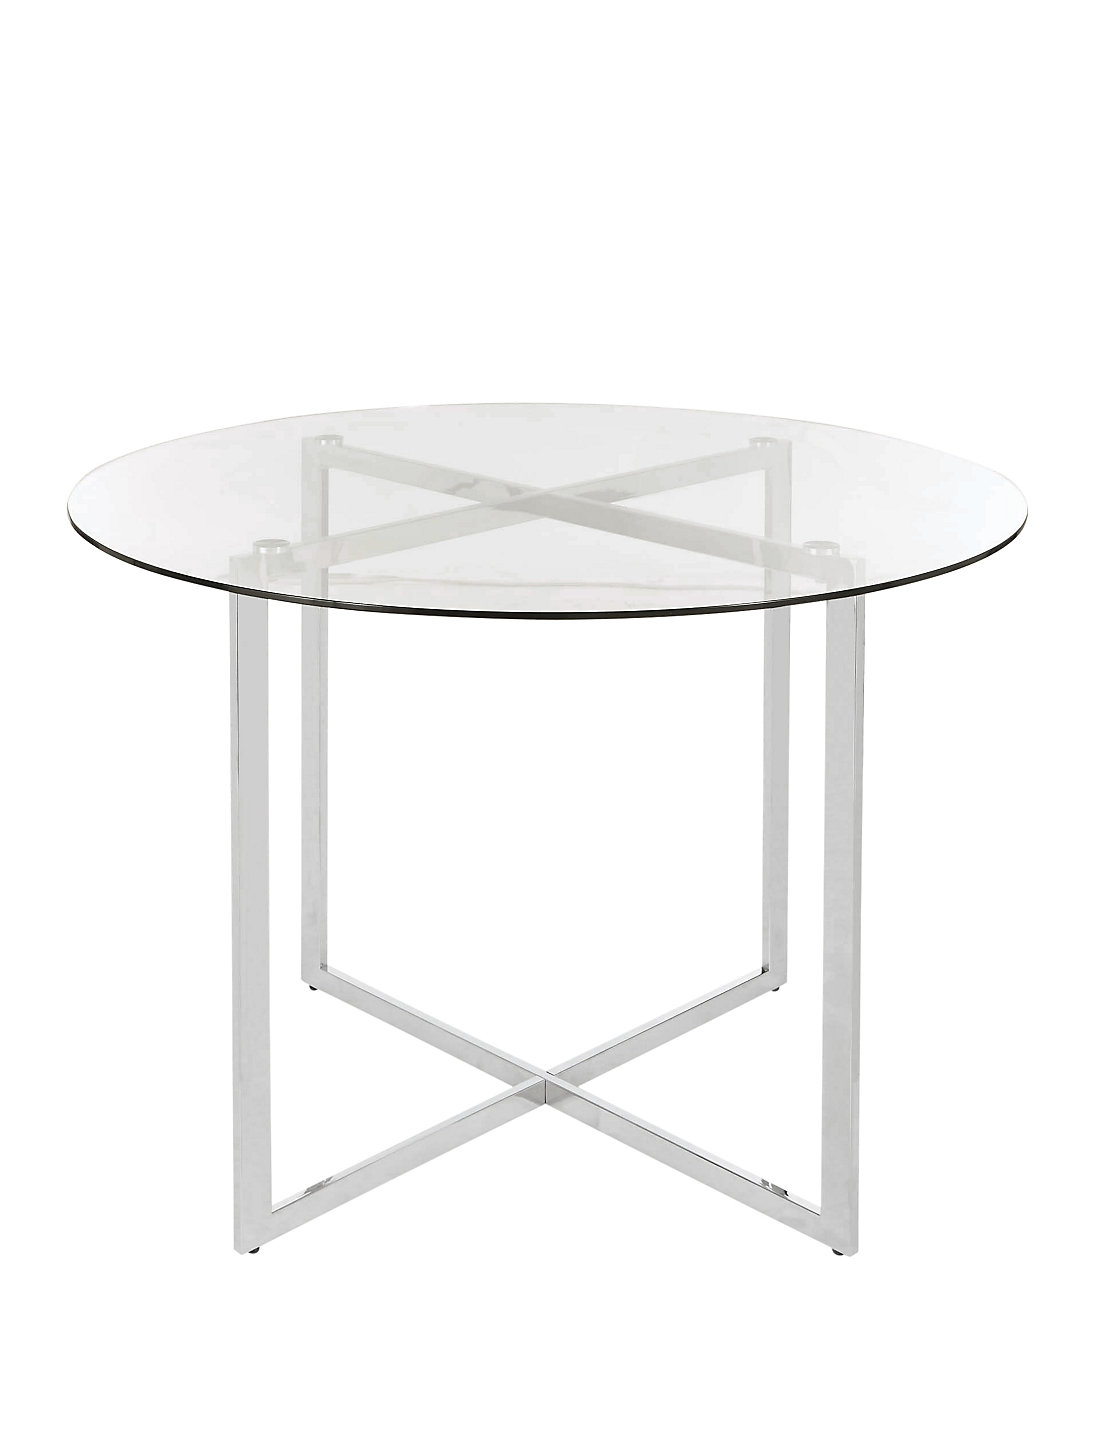 metal glass round dining table - Glass Round Dining Table